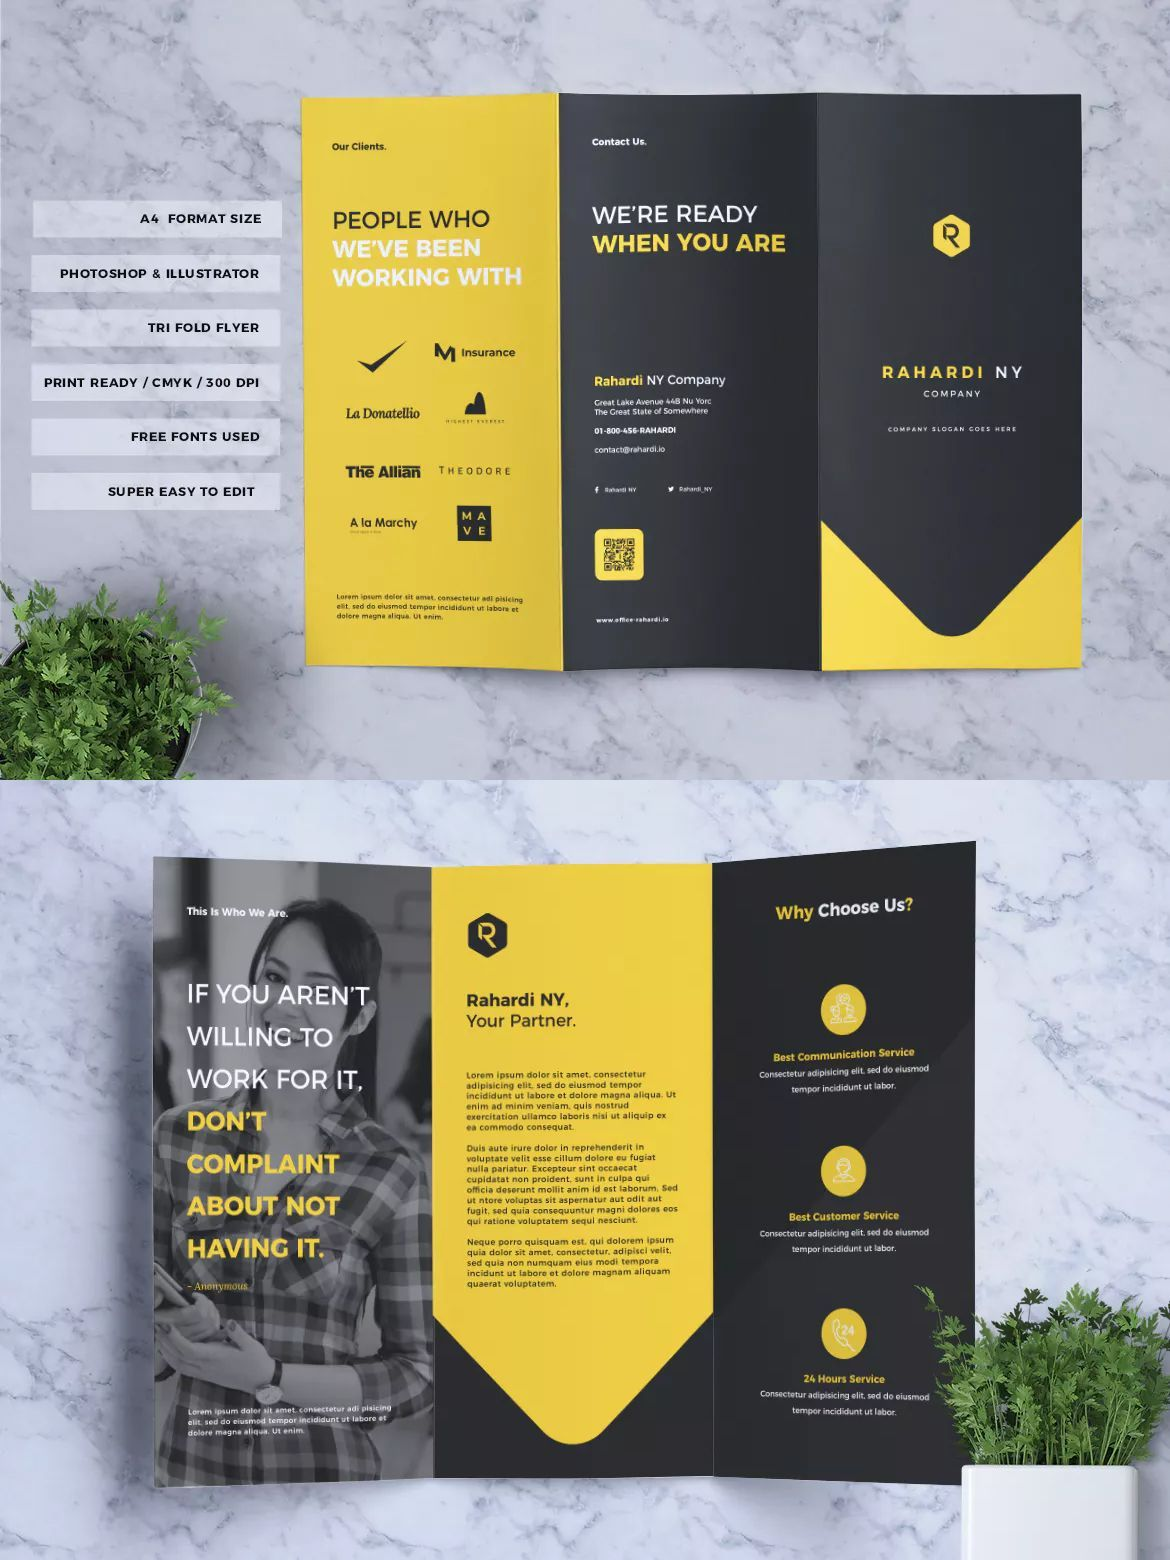 003 Shocking Photoshop Brochure Template Psd Free Download Inspiration Full